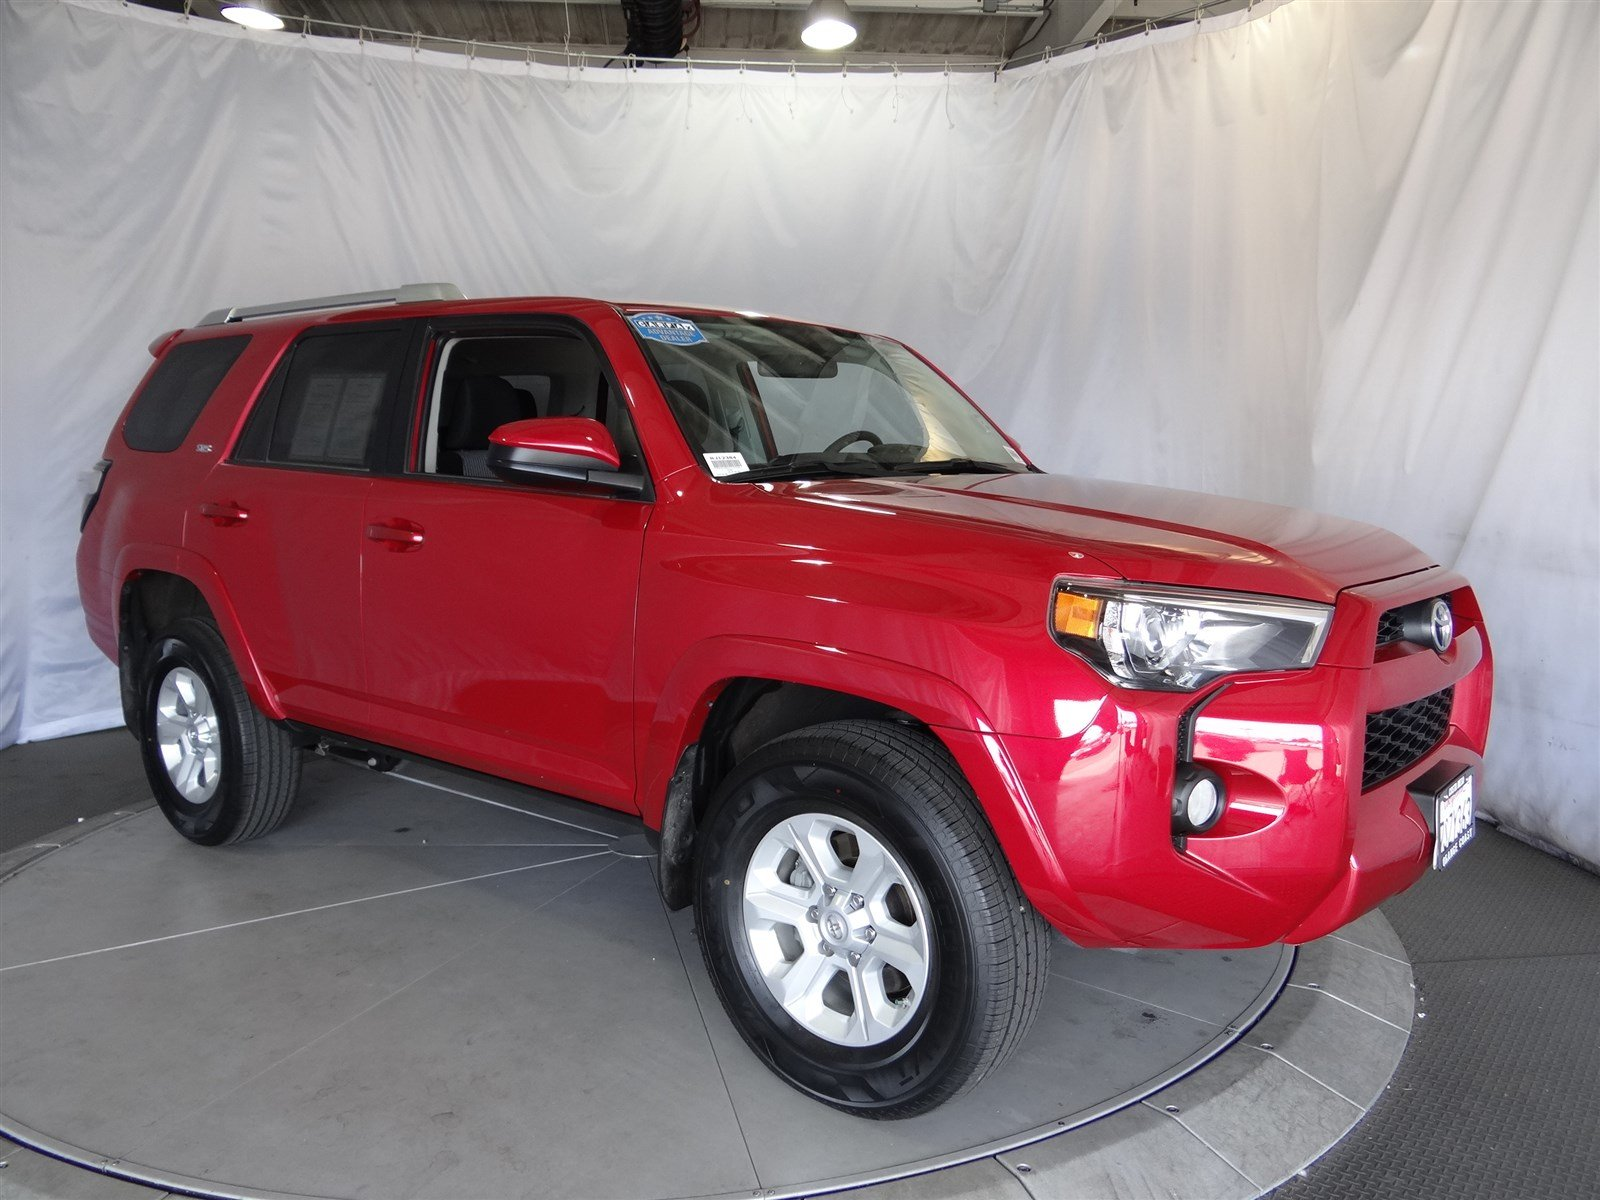 limited in for florida sale cars suv used west toyota fl palm fine stock carsforsale